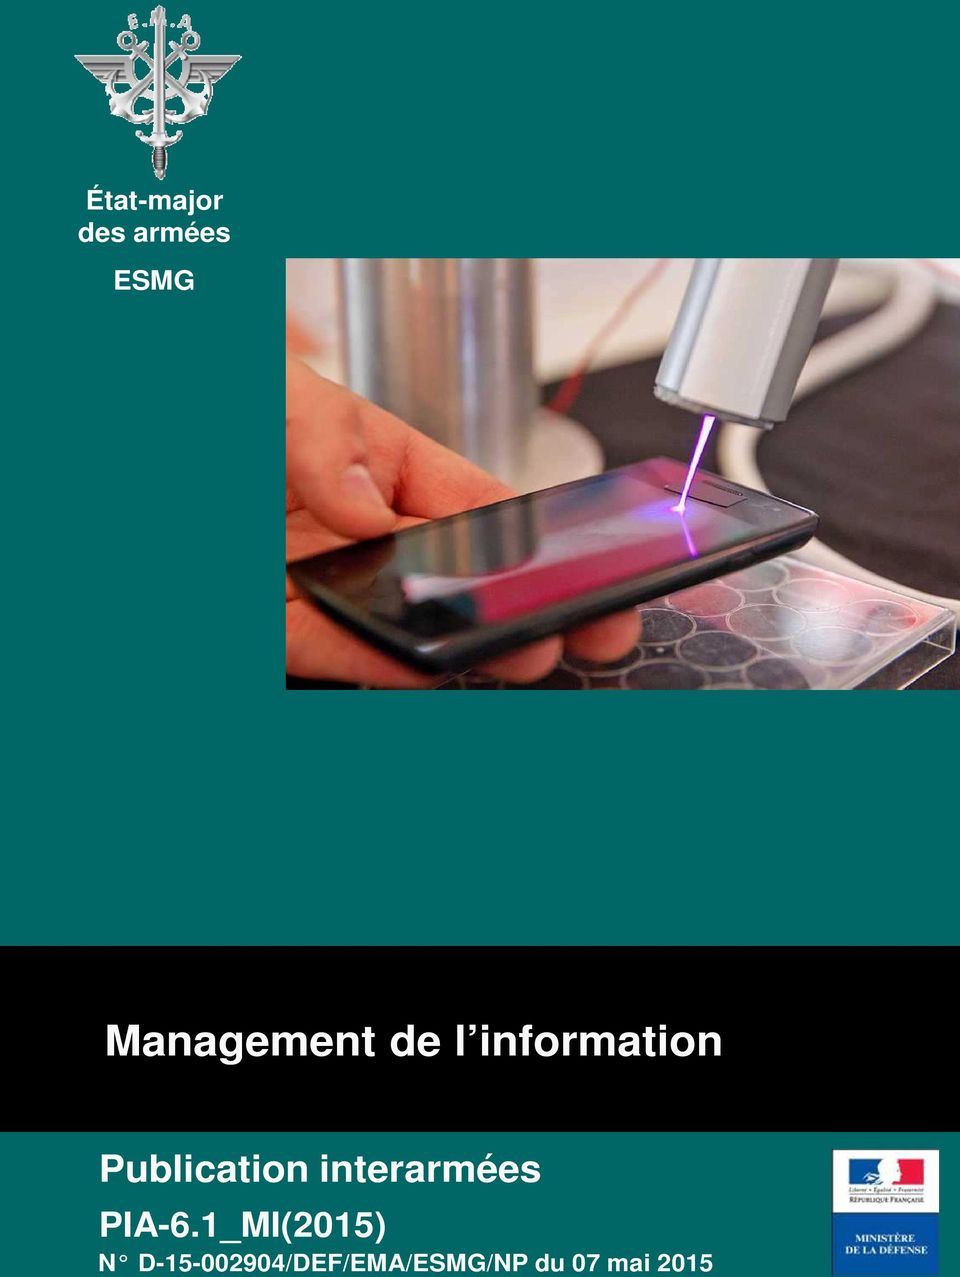 1 (PROV) ESMG Management de l information